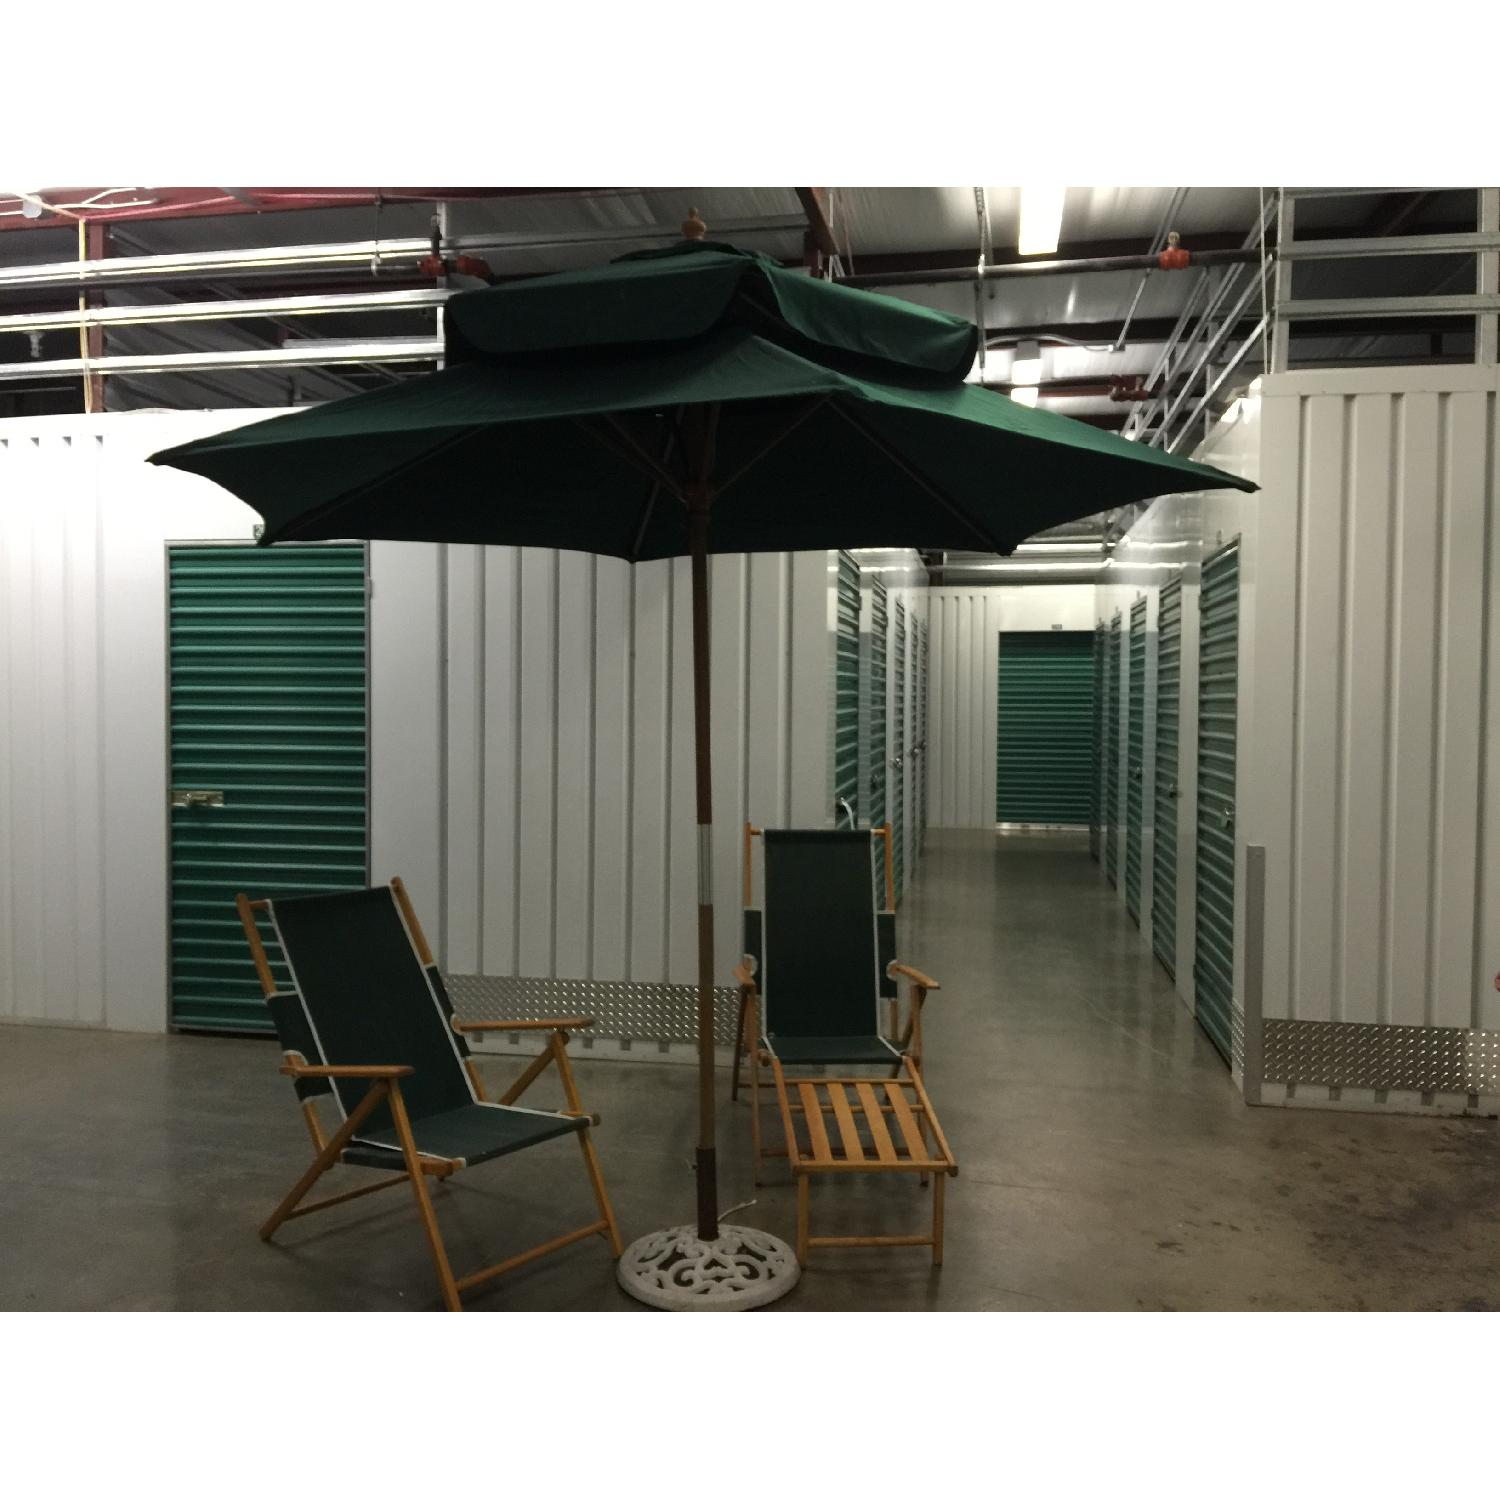 Fully Renovated Long Island Gold Coast Umbrella w/ 2 Folding Deckchairs - image-1